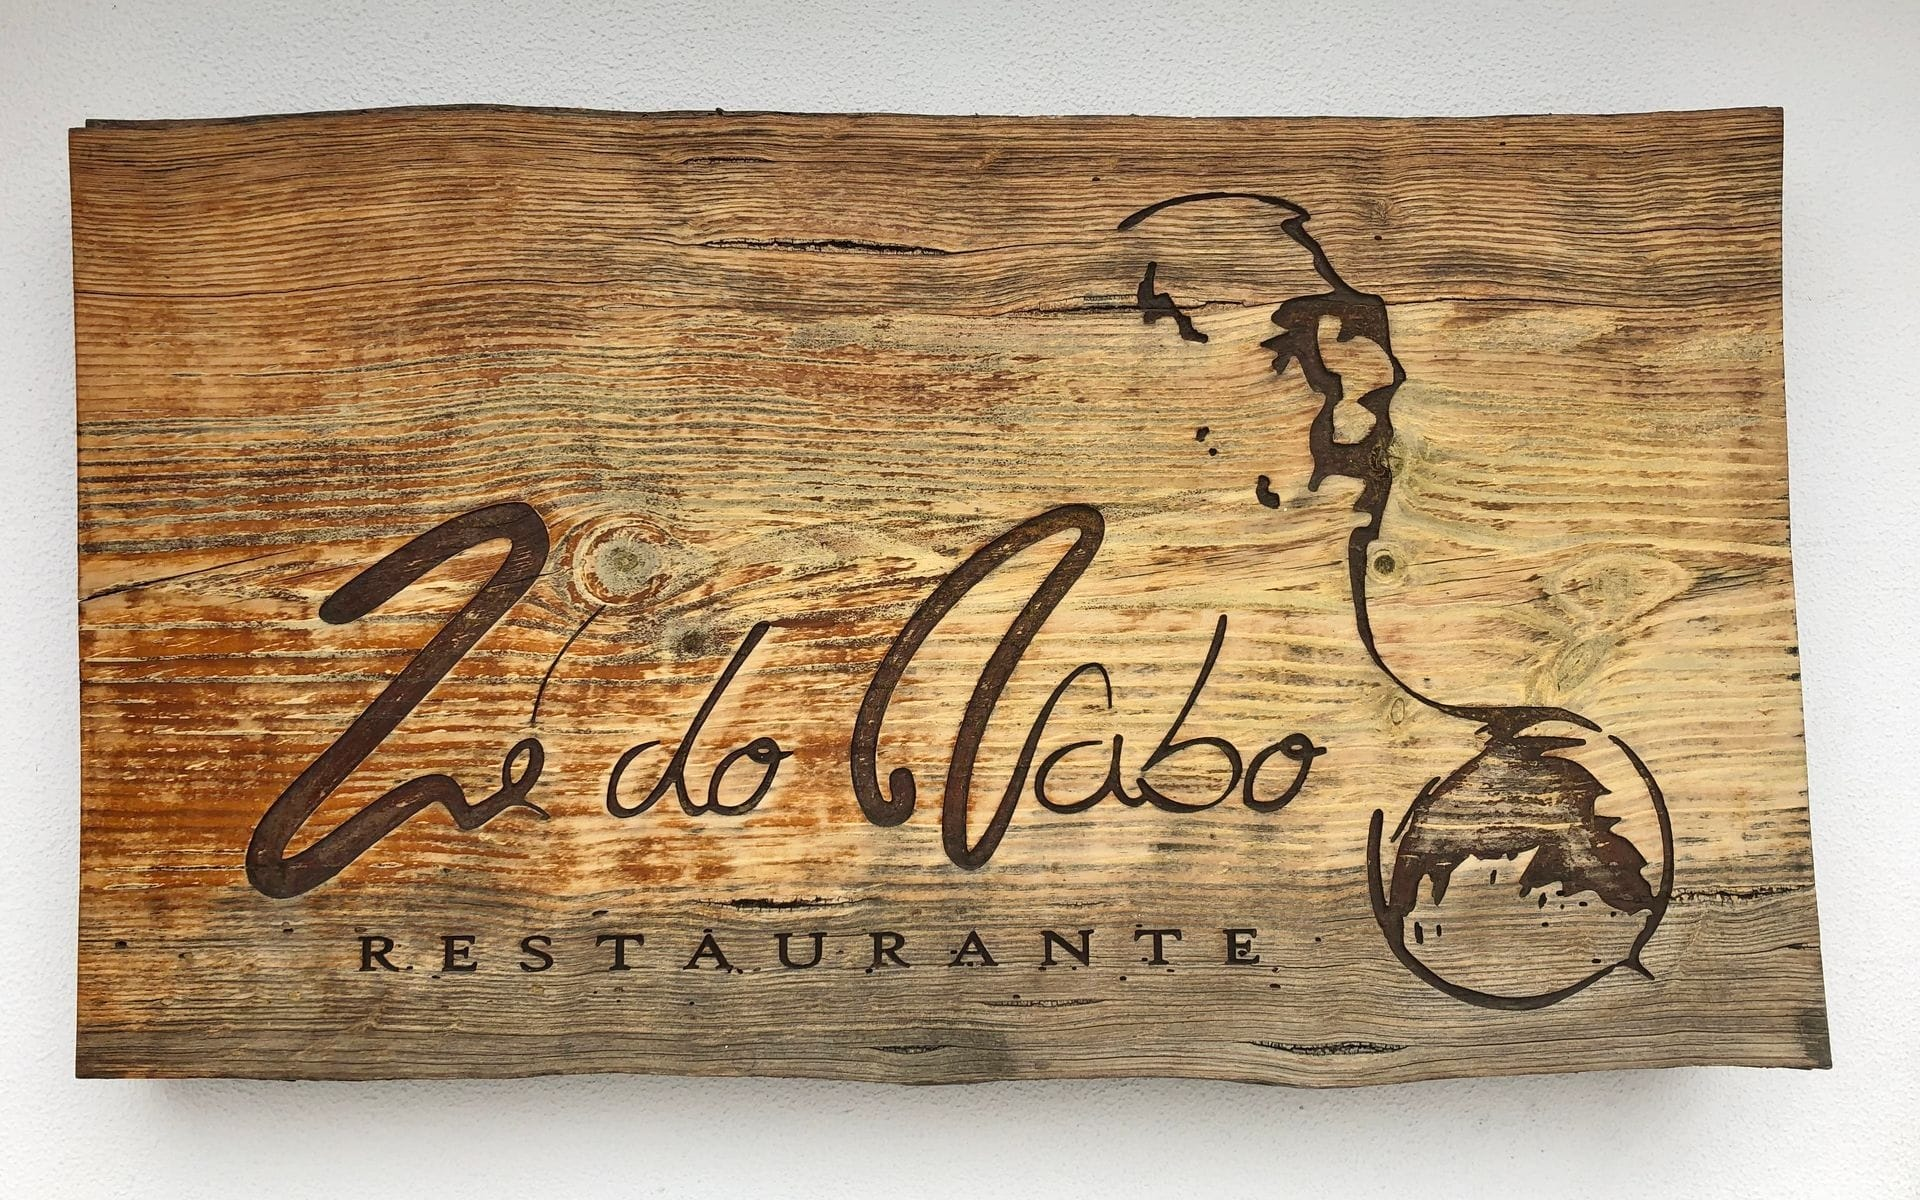 Restaurante Ze do Nabo